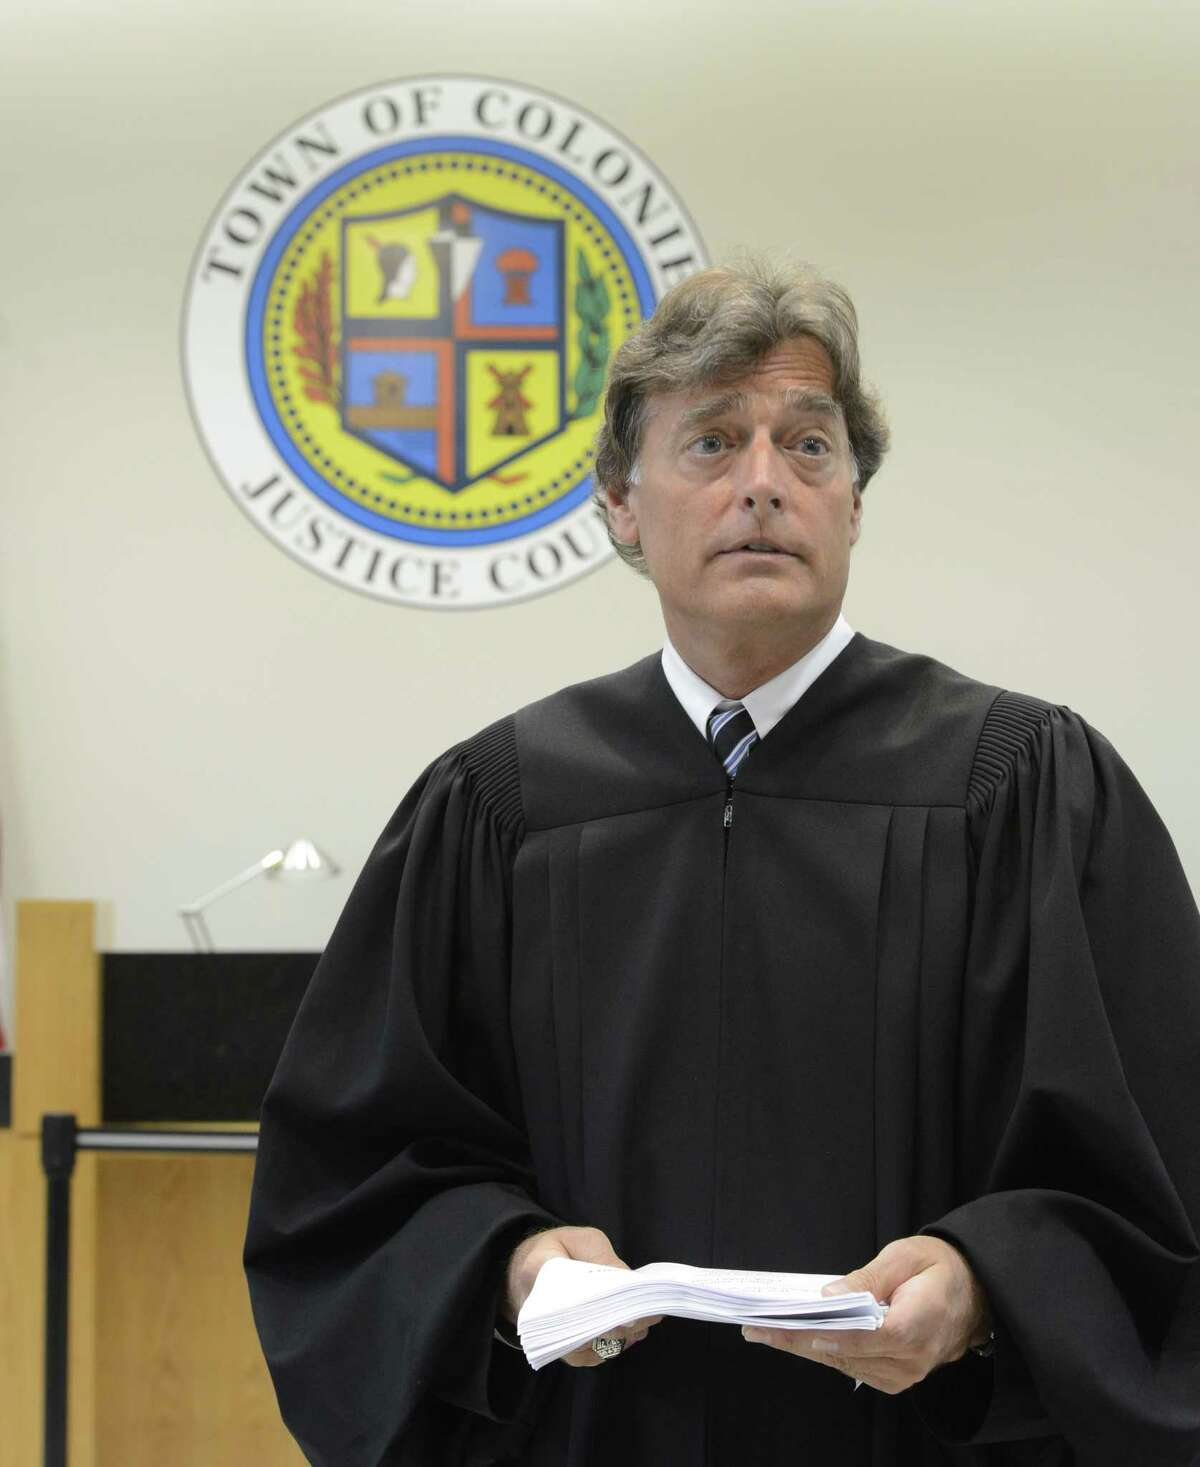 Presiding Town of Colonie Judge Peter Crummey in one of the two courtrooms in the Public Safety Center in Colonie, N.Y. June 11, 2012. In Feb. 2021, Crummey has not provided details - which are required under a new New York state law - about why he and Colonie's other two justices are recusing themselves from all cases involving one public defender. (Skip Dickstein / Times Union)